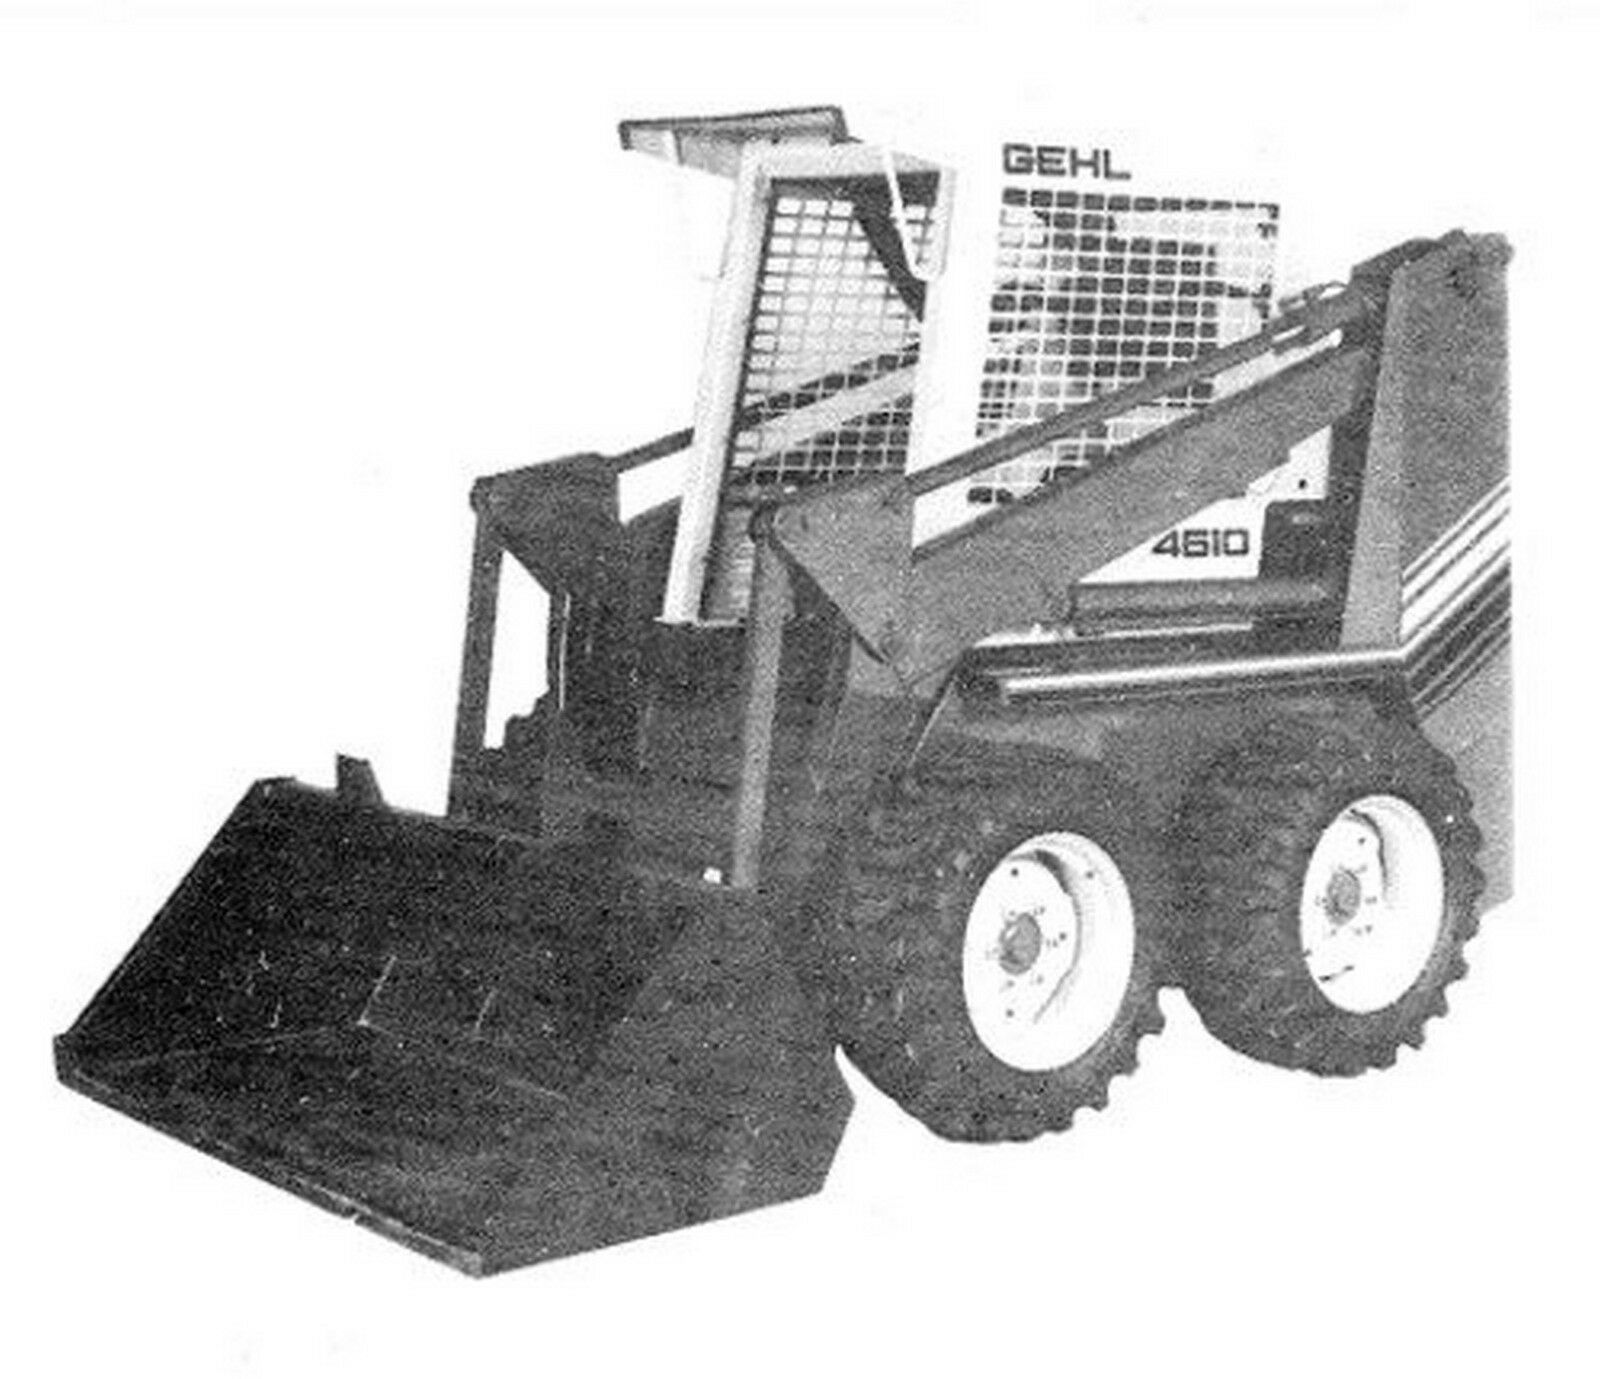 Gehl 4610 Skid Steer Loader Parts Manual 1 of 2FREE Shipping ...